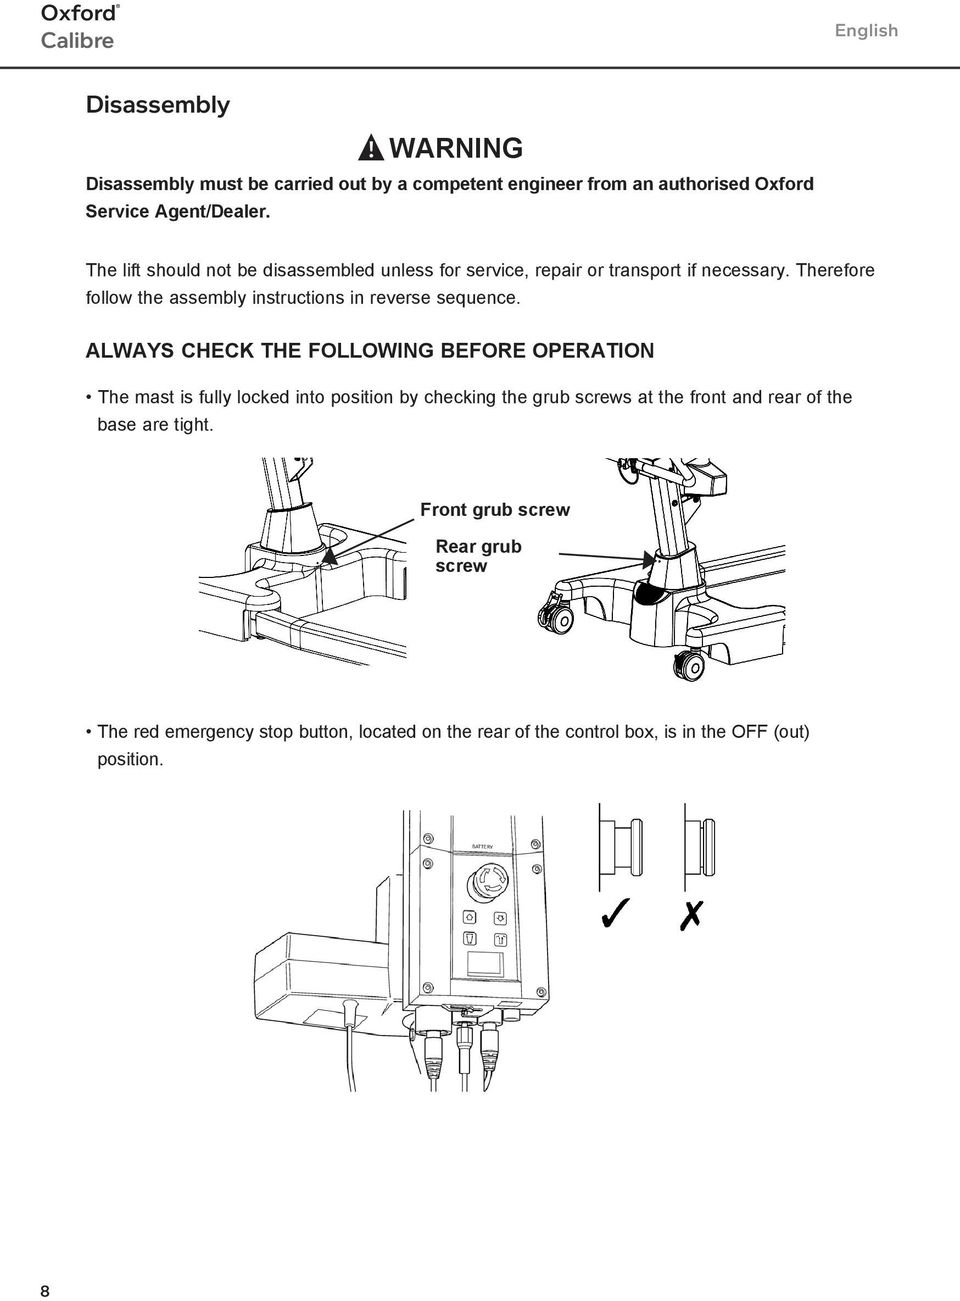 Therefore follow the assembly instructions in reverse sequence.